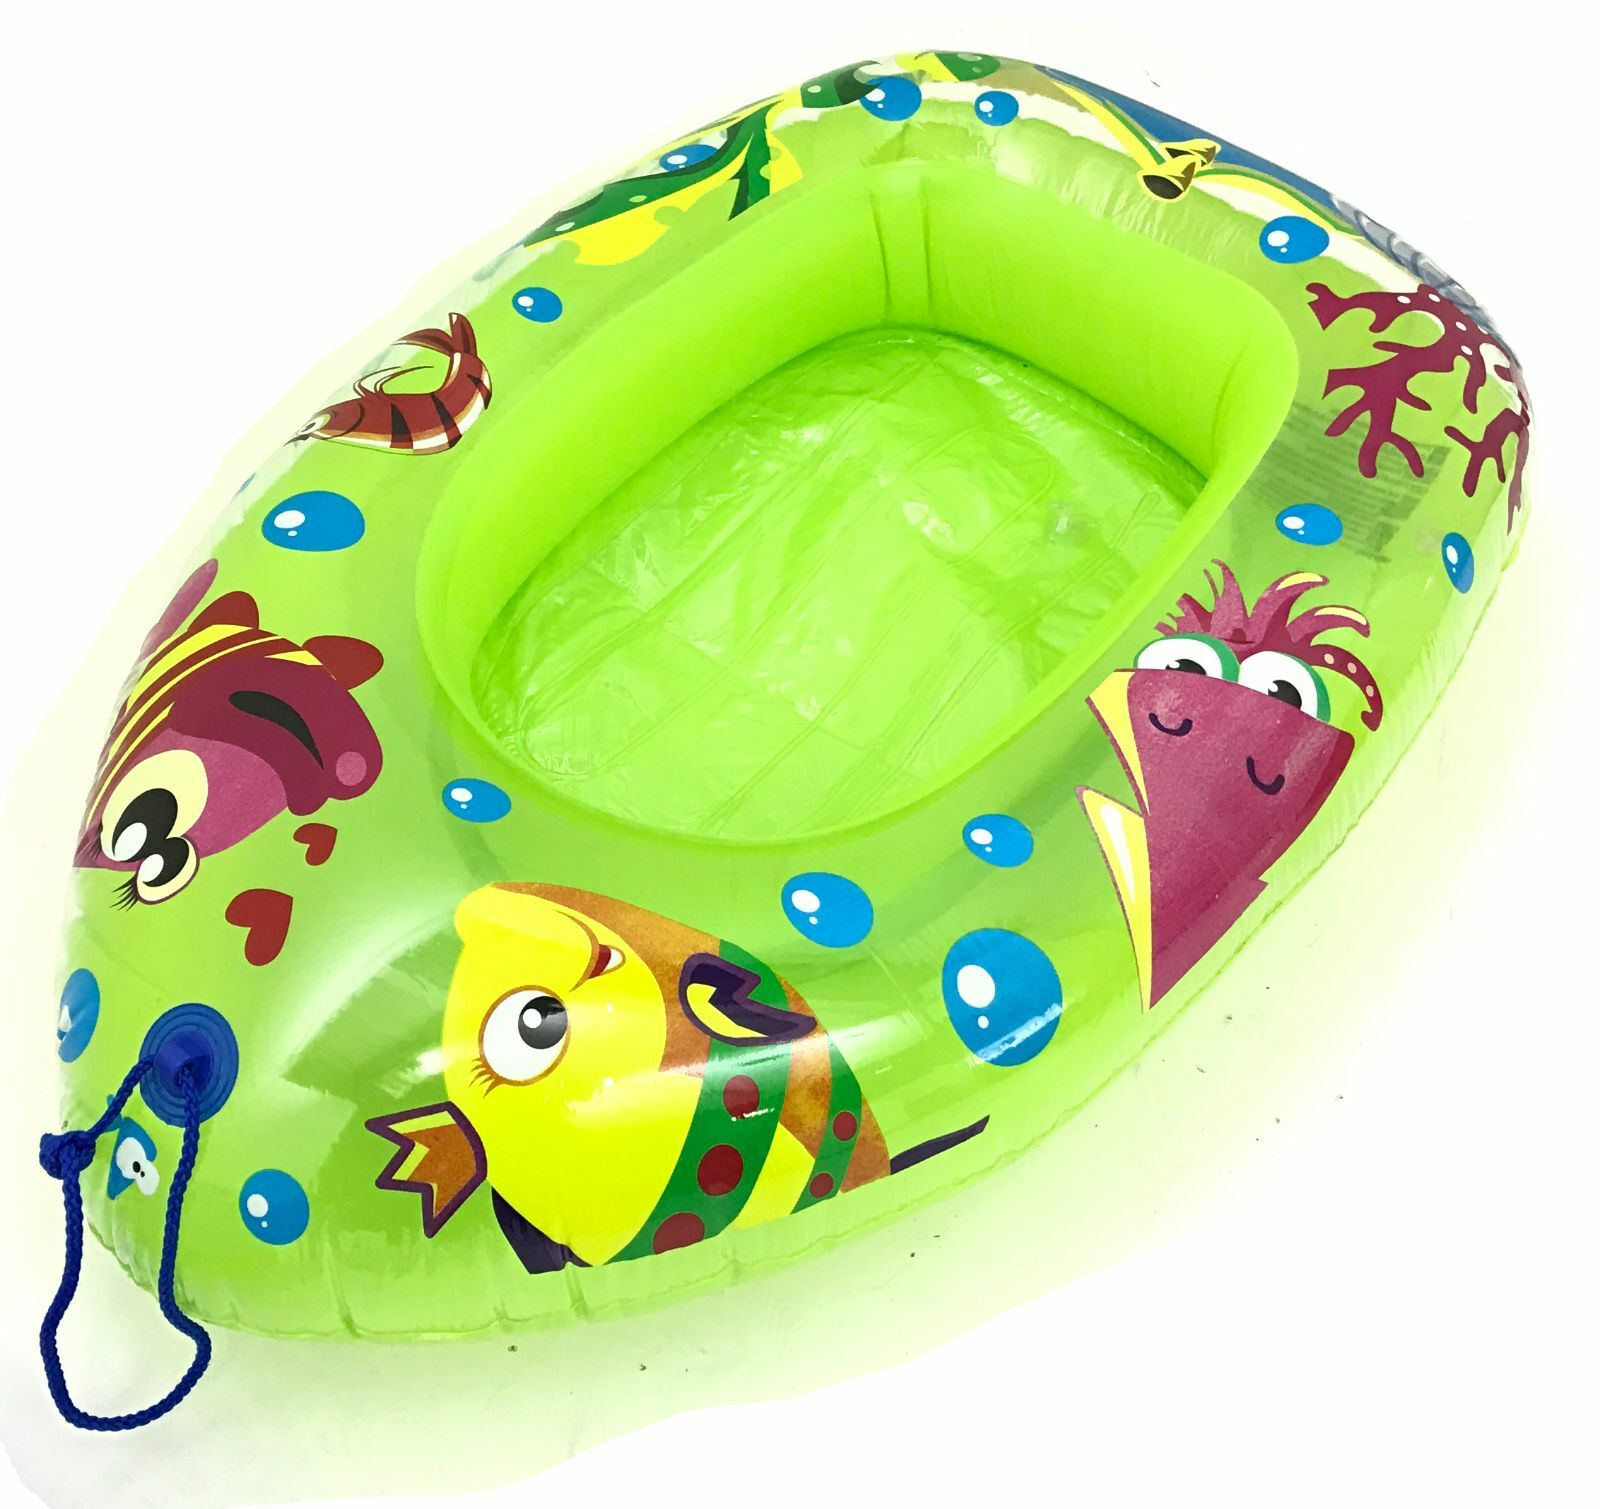 Childs Rubber Boat Dinghy Inflatable Raft Childrens Swimming Pool Toy Beach Kids